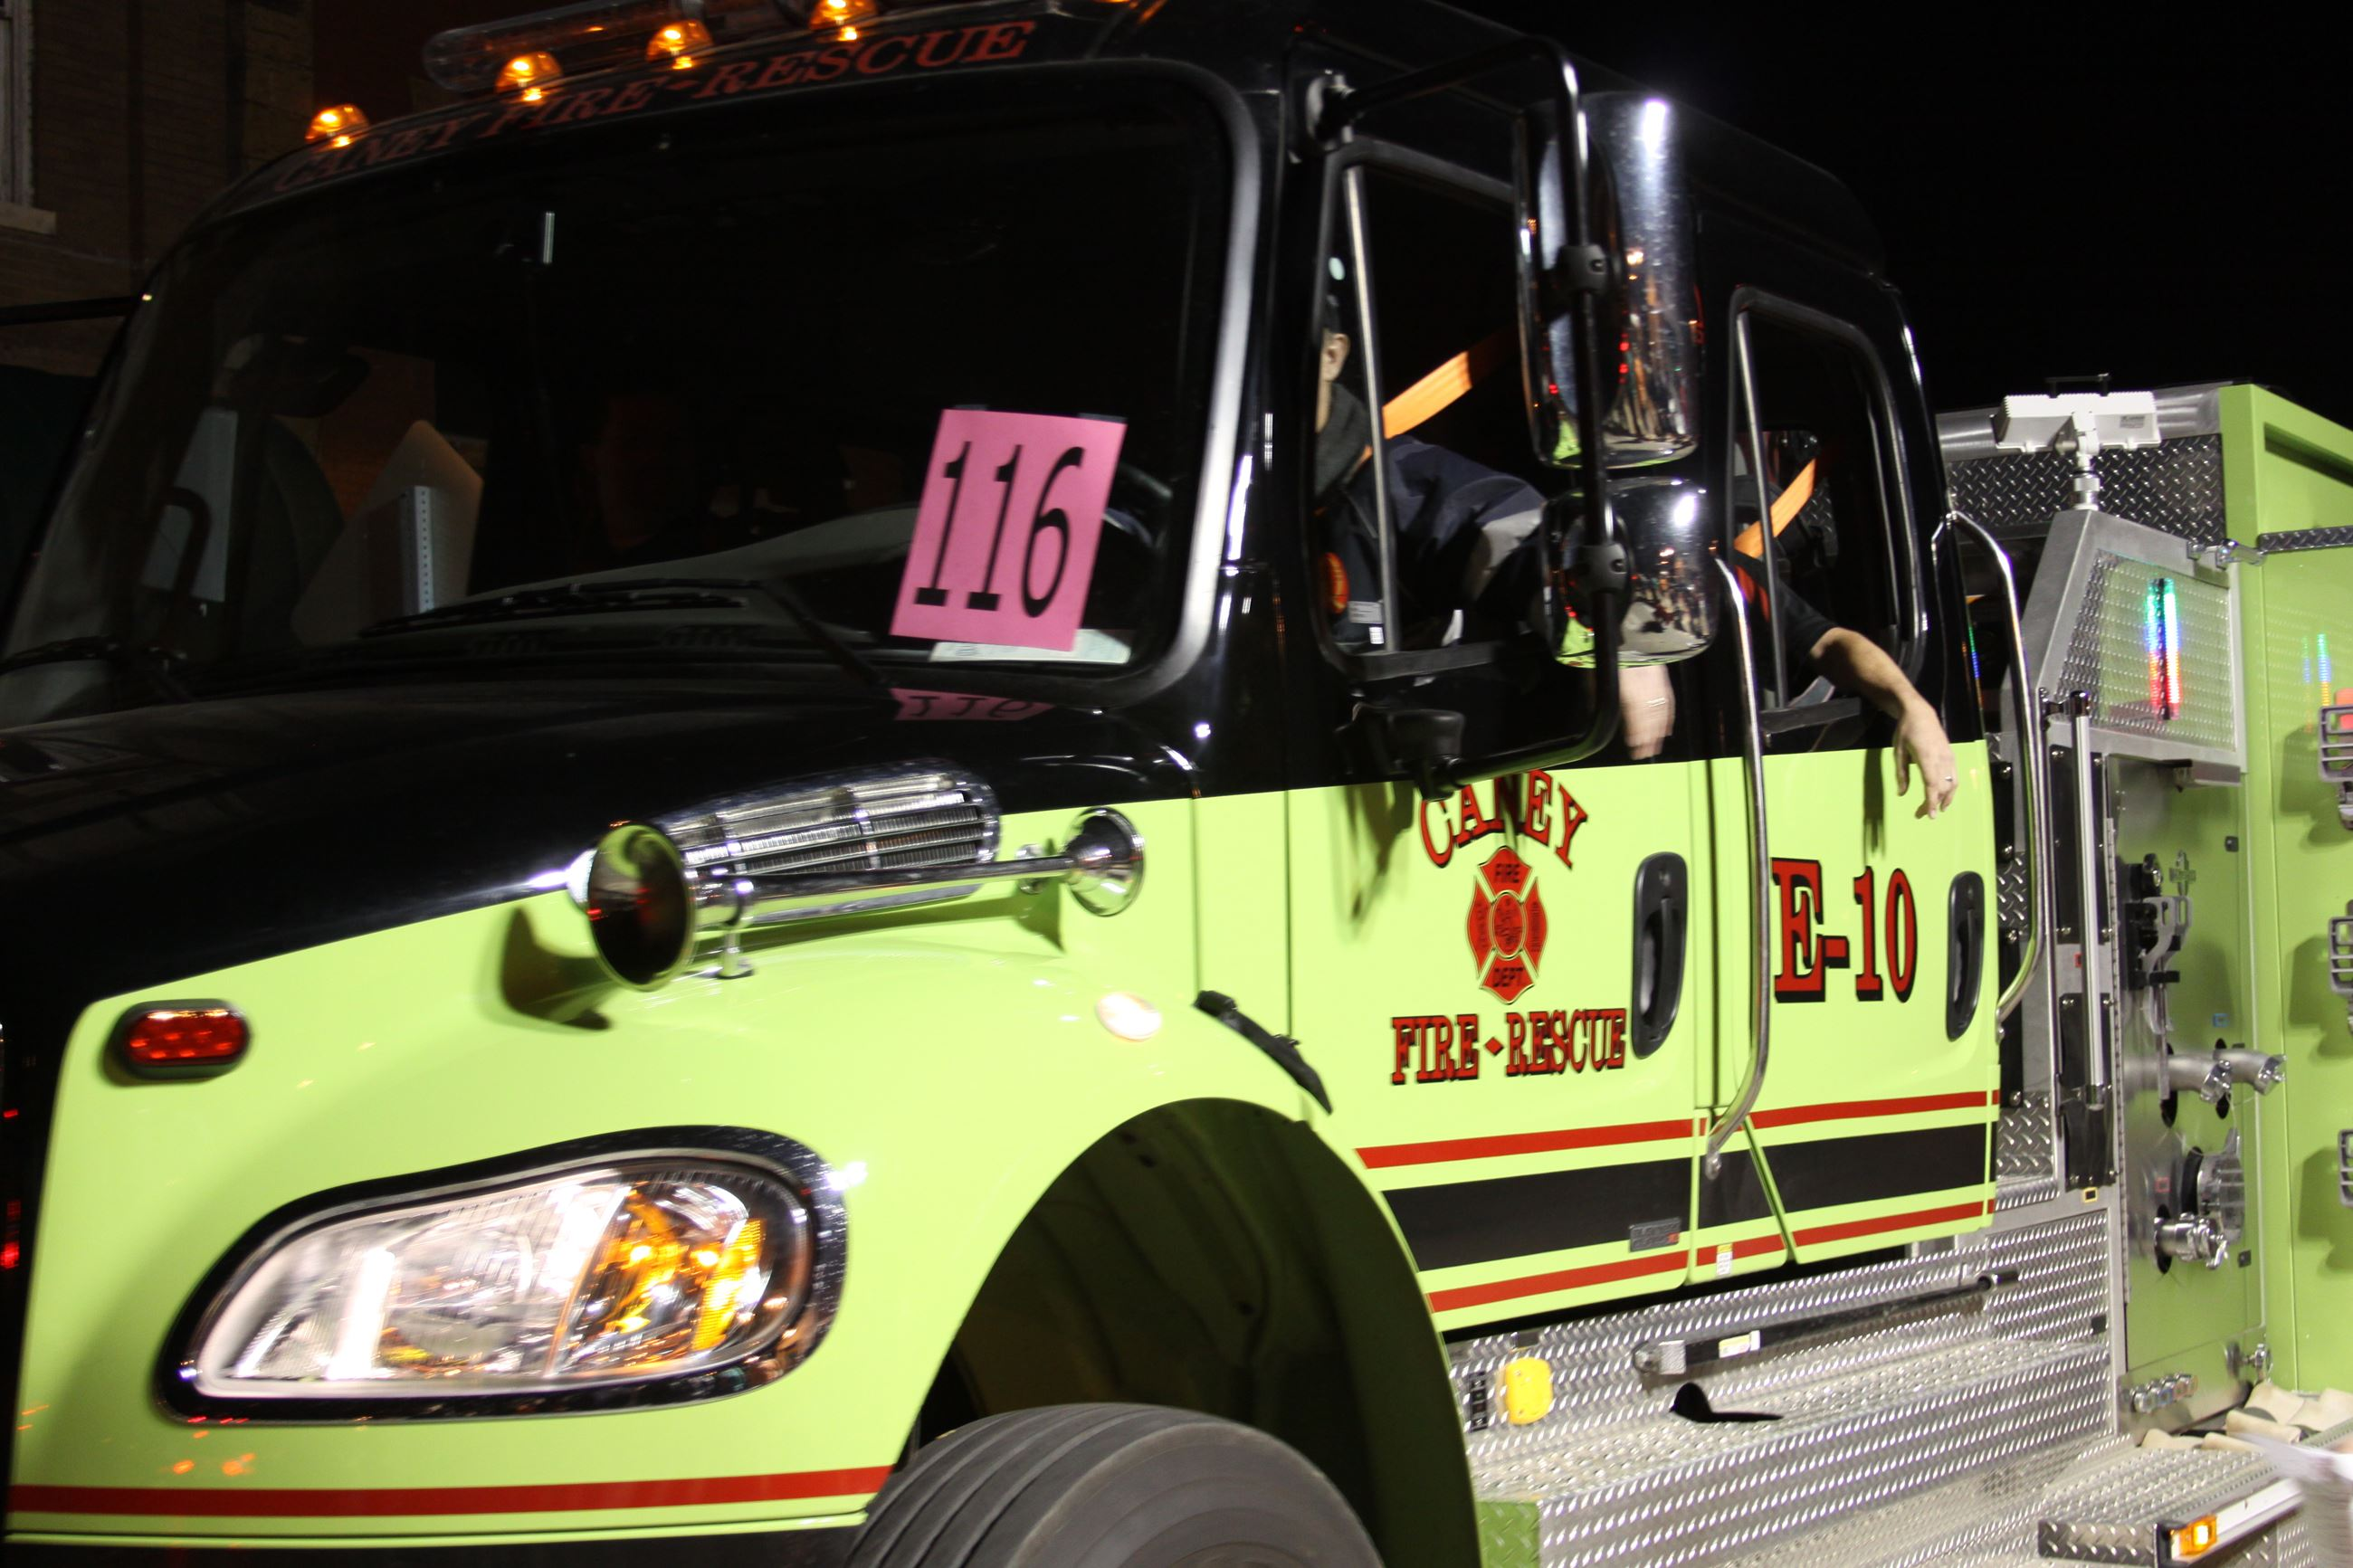 116 - Caney Fire Department